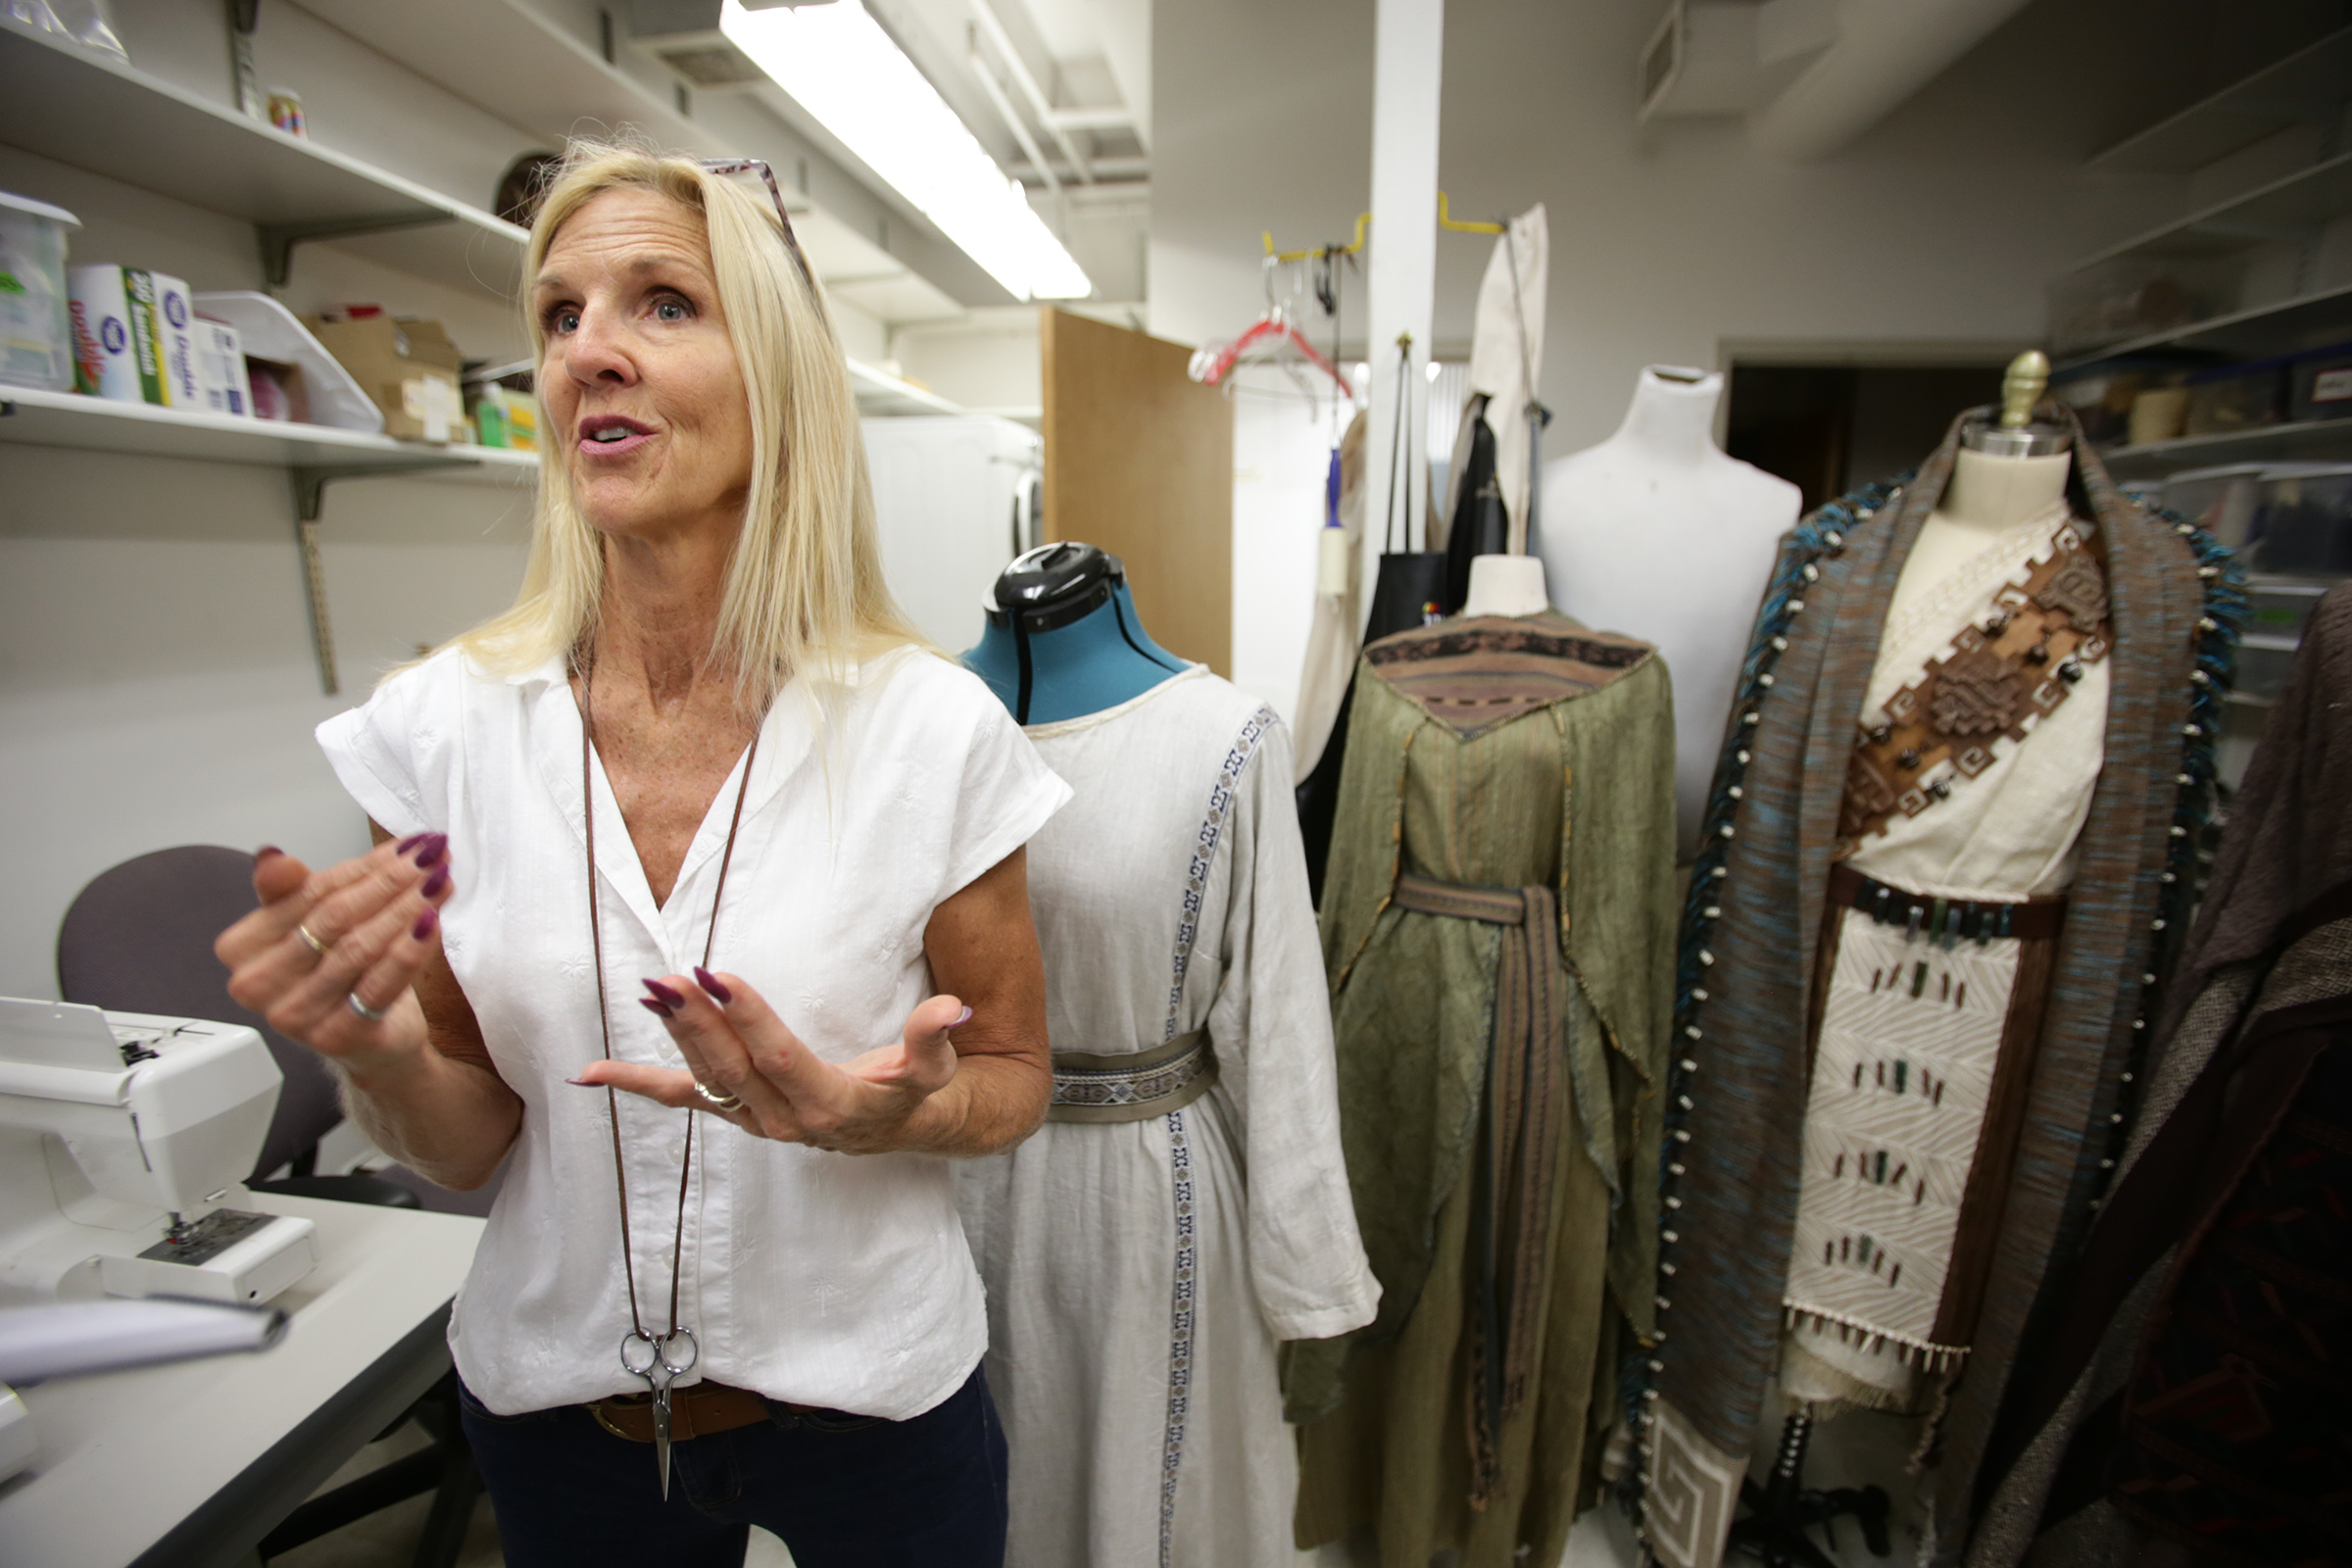 Iffer Mitchell, assistant costume department head, talks about the costumes and other items used in the Book of Mormon videos in Provo, Utah, at the Motion Picture Studio on Tuesday, Sept. 3, 2019.